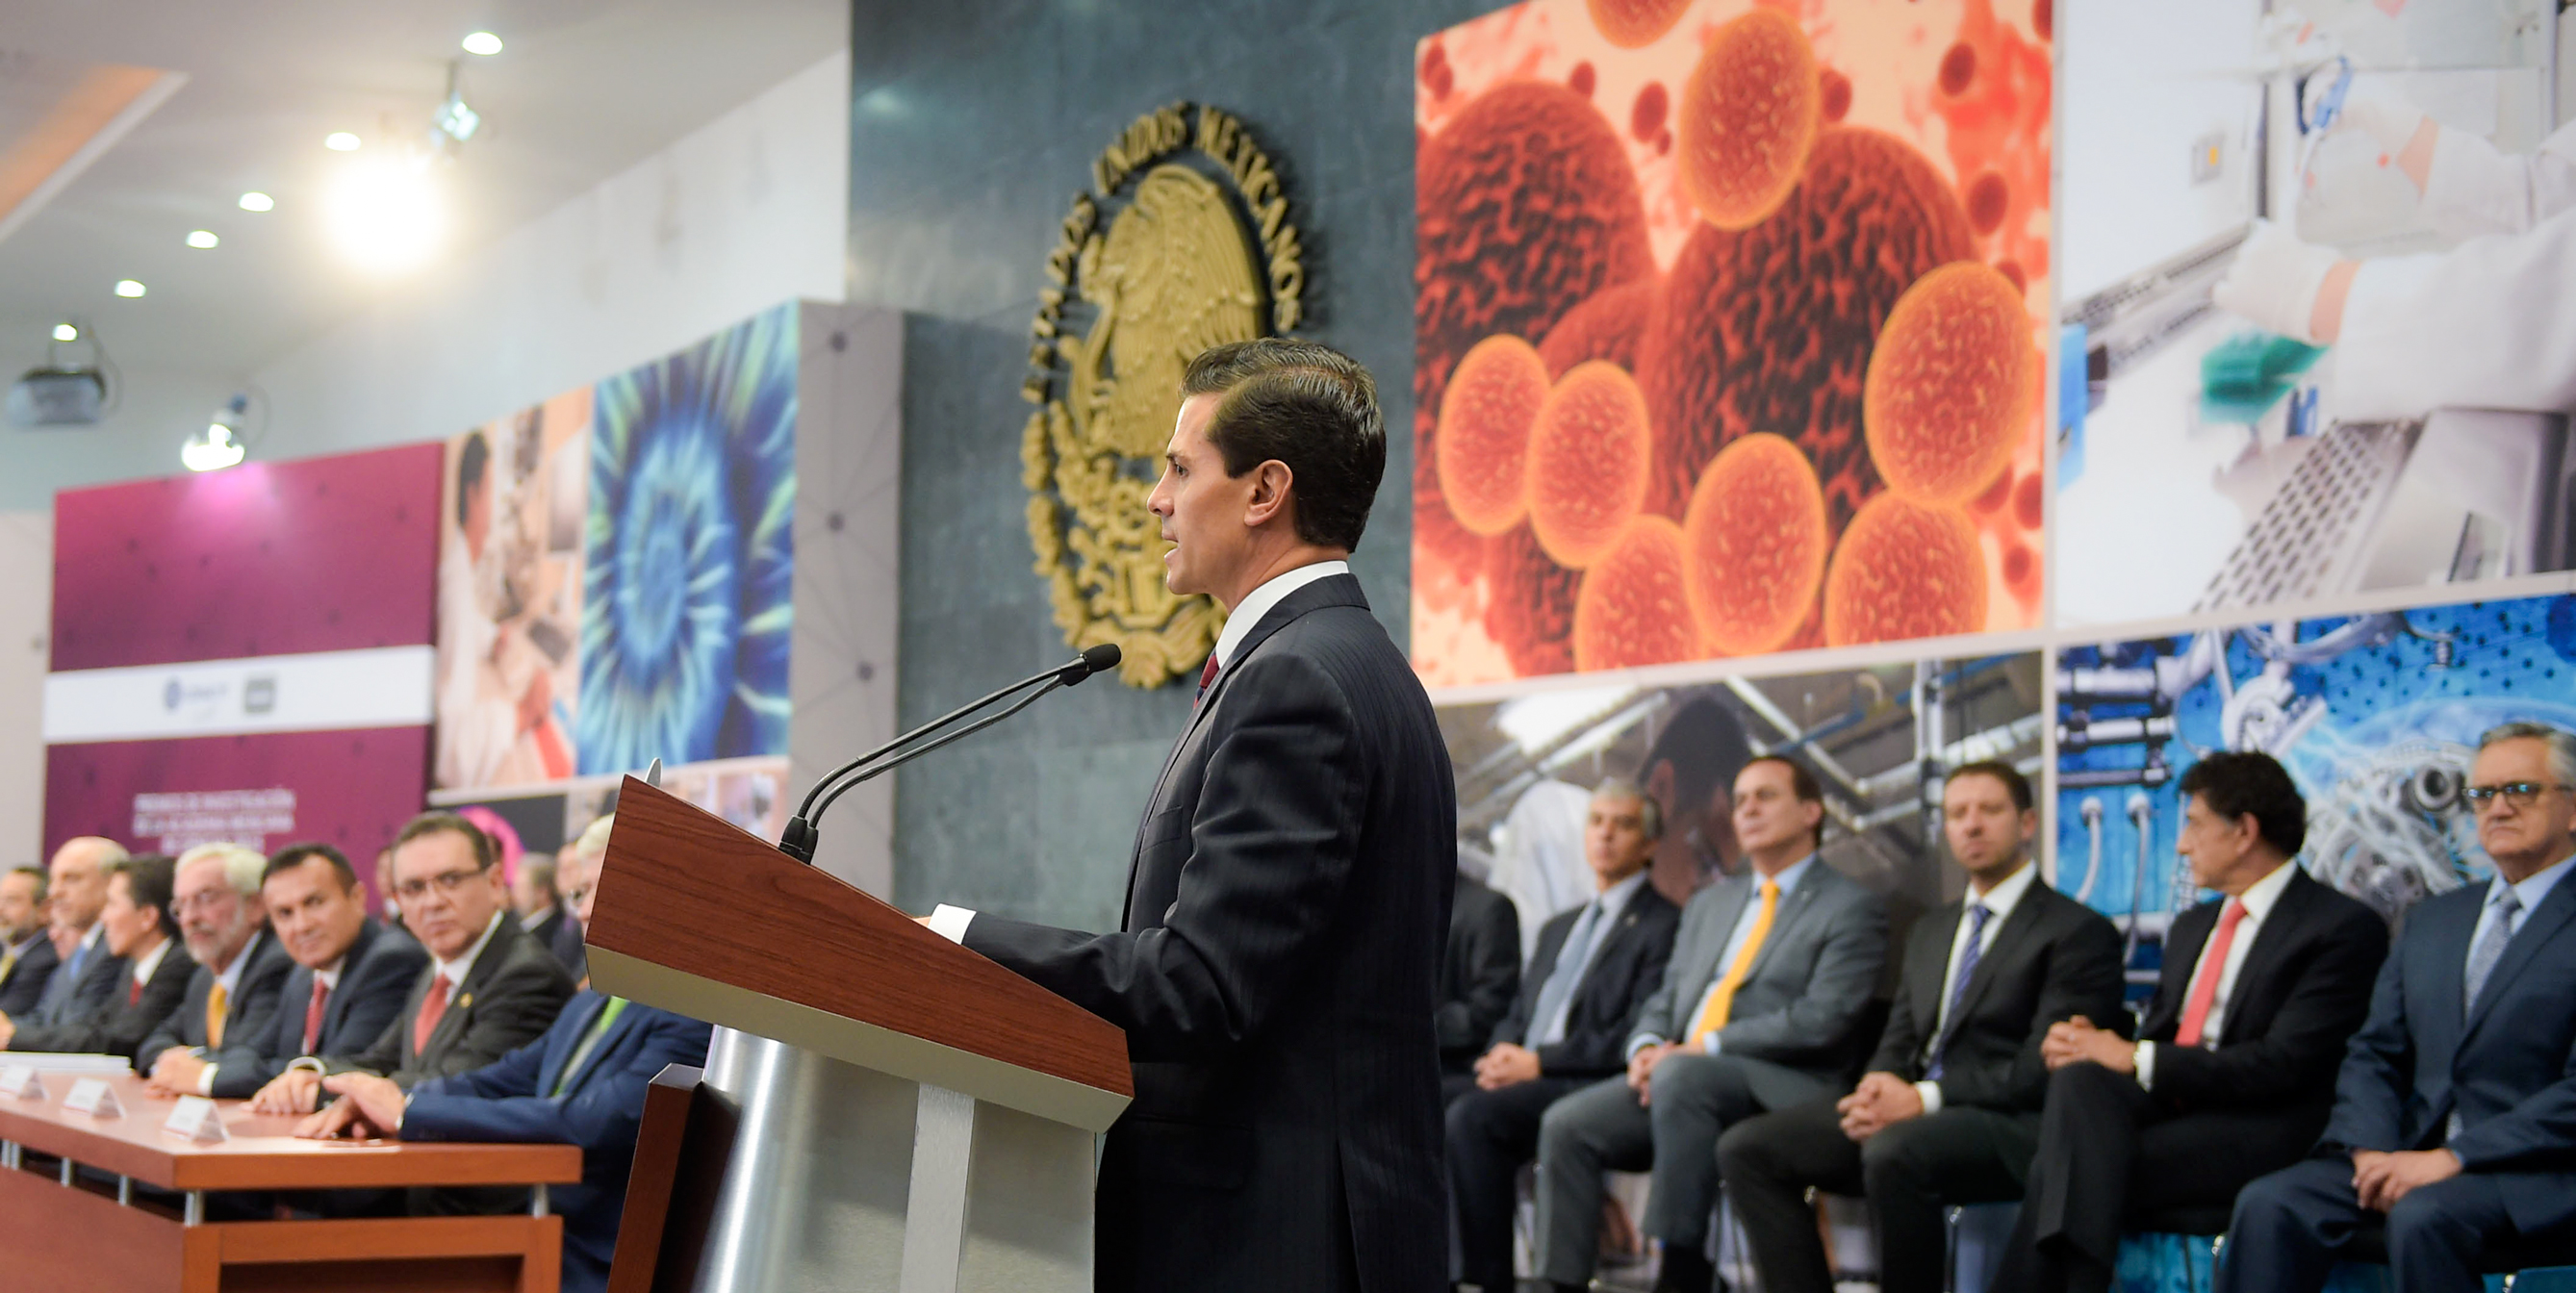 This year, public investment in science, technology and innovation has reached record levels: 92 billion pesos, equivalent to an increase of more than 37 percent over the amount invested in 2012, when this administration began.